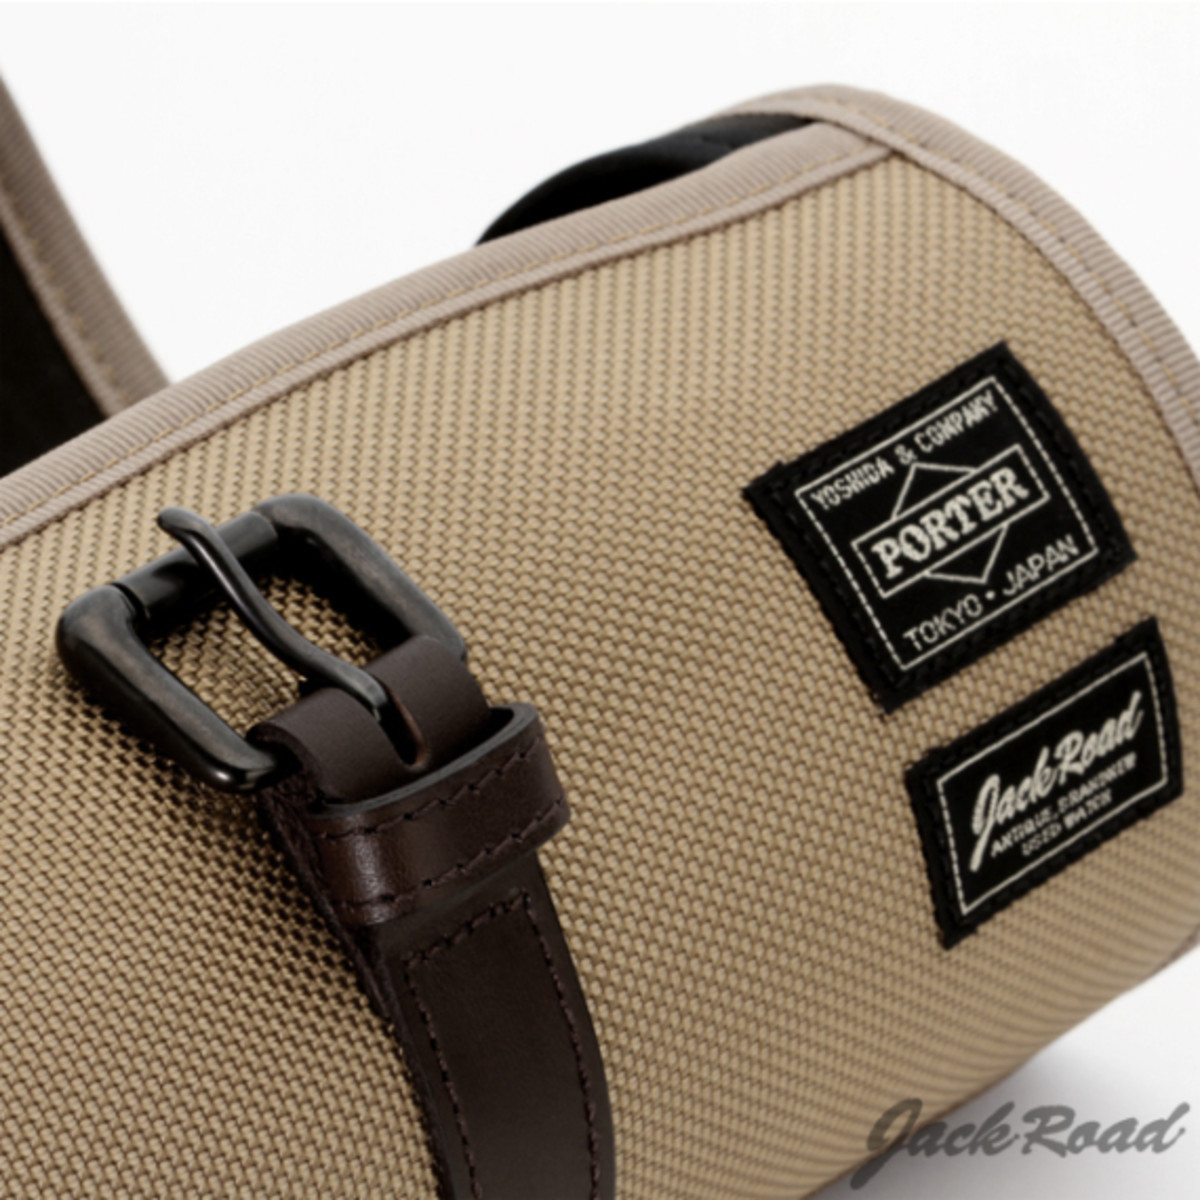 jack-road-porter-watch-carrying-case-18